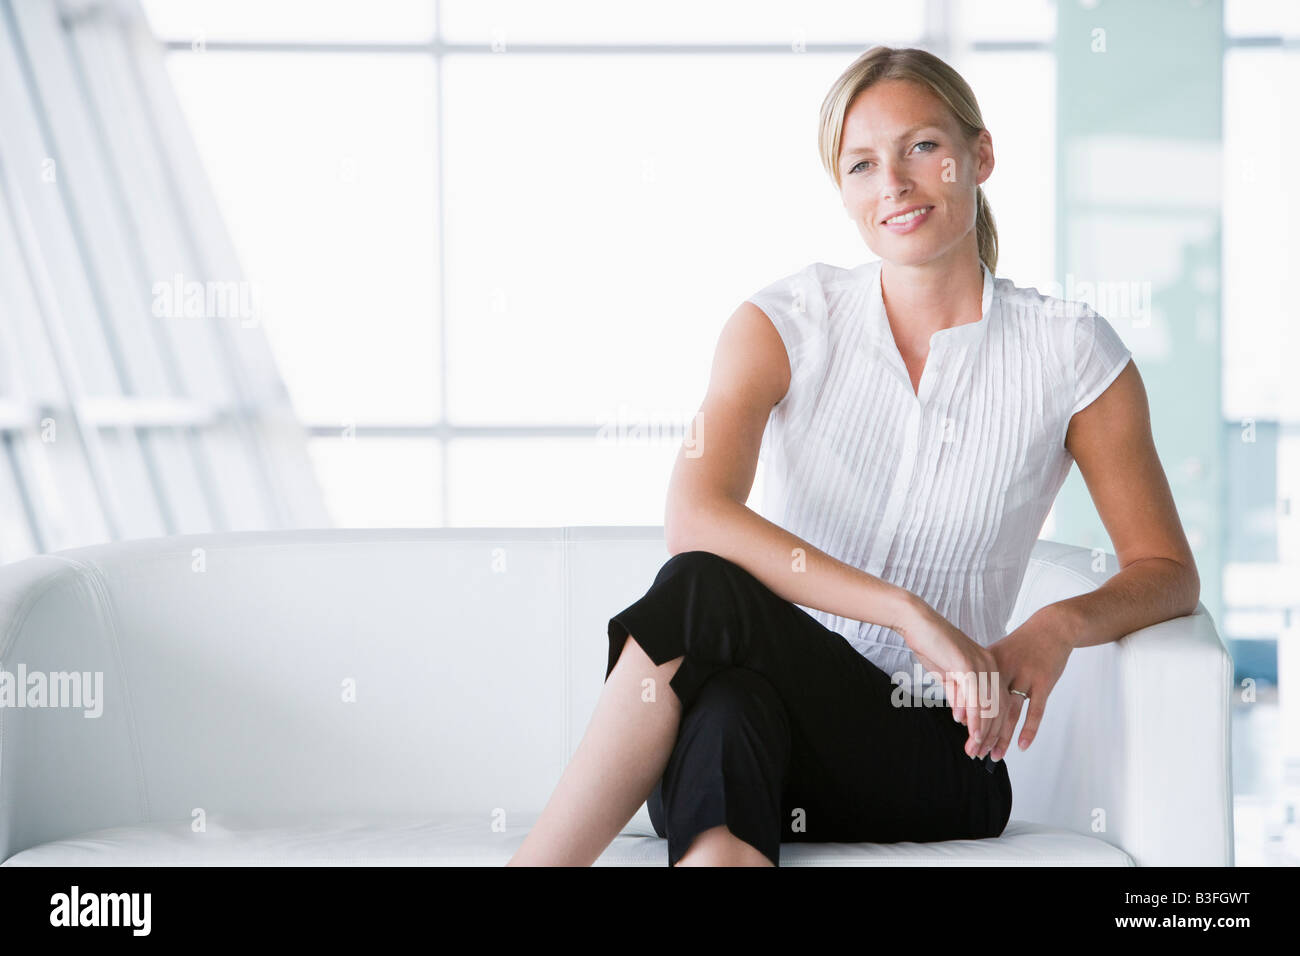 Businesswoman sitting in office lobby smiling - Stock Image